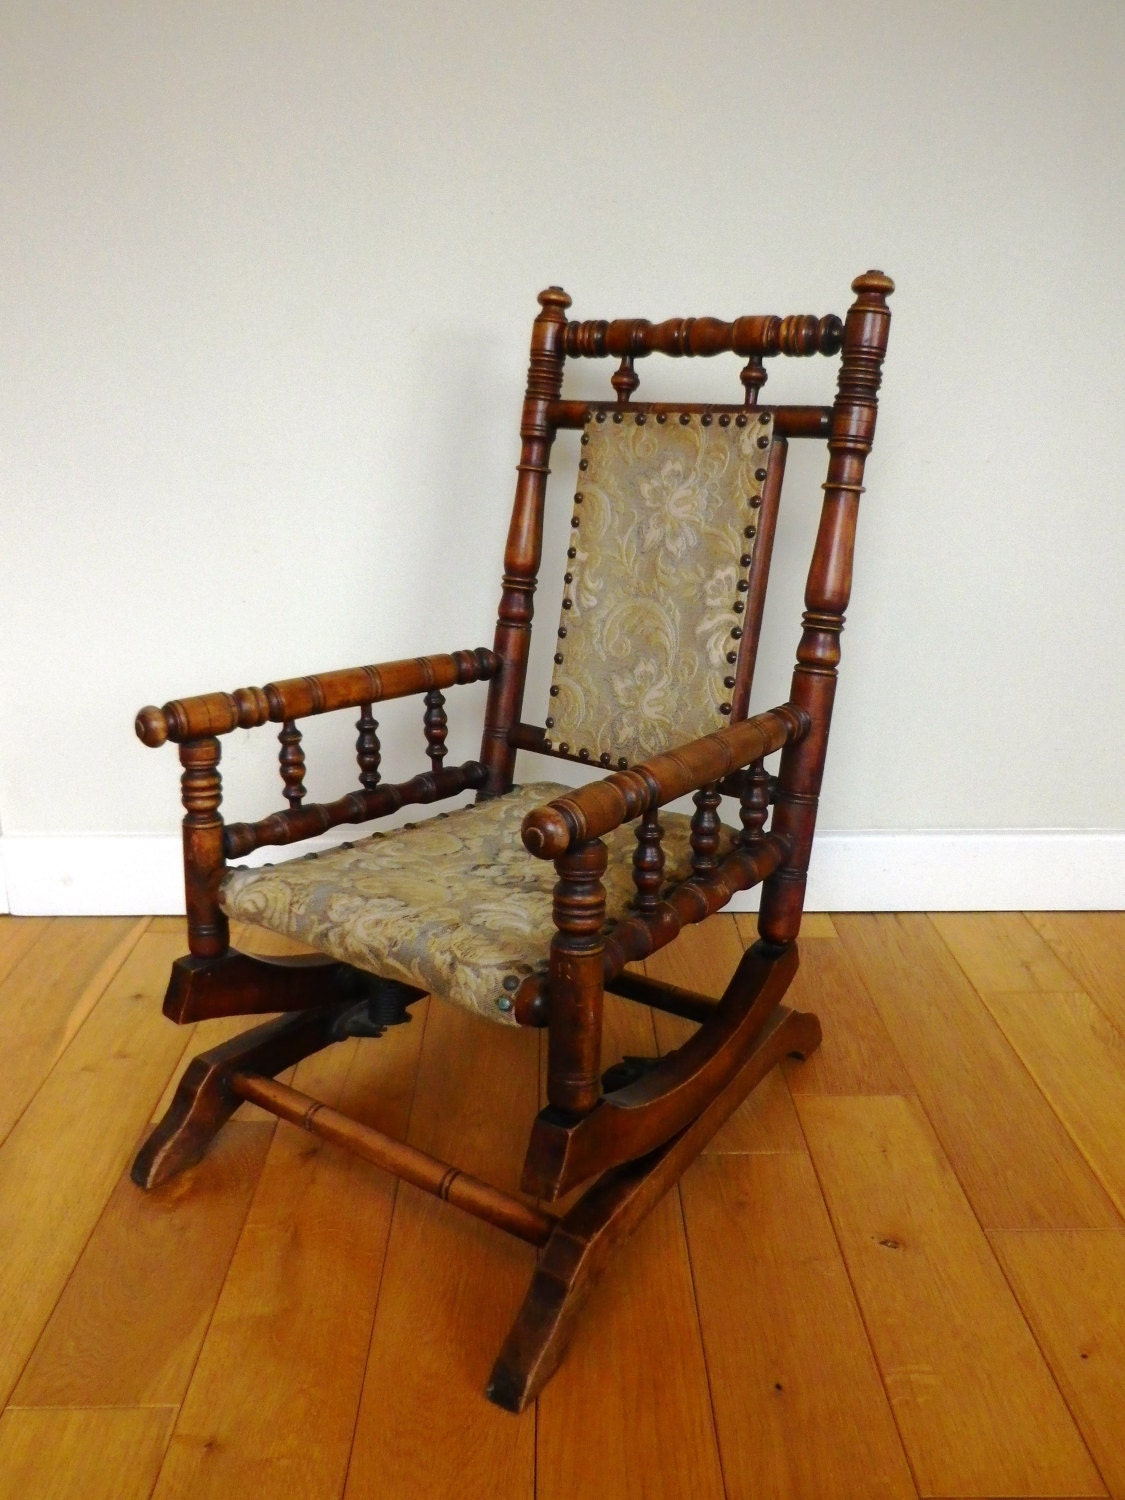 Antique Rocking Chair Late 19th Century oak and beech  childs American rocking chair Victorian rocking chair